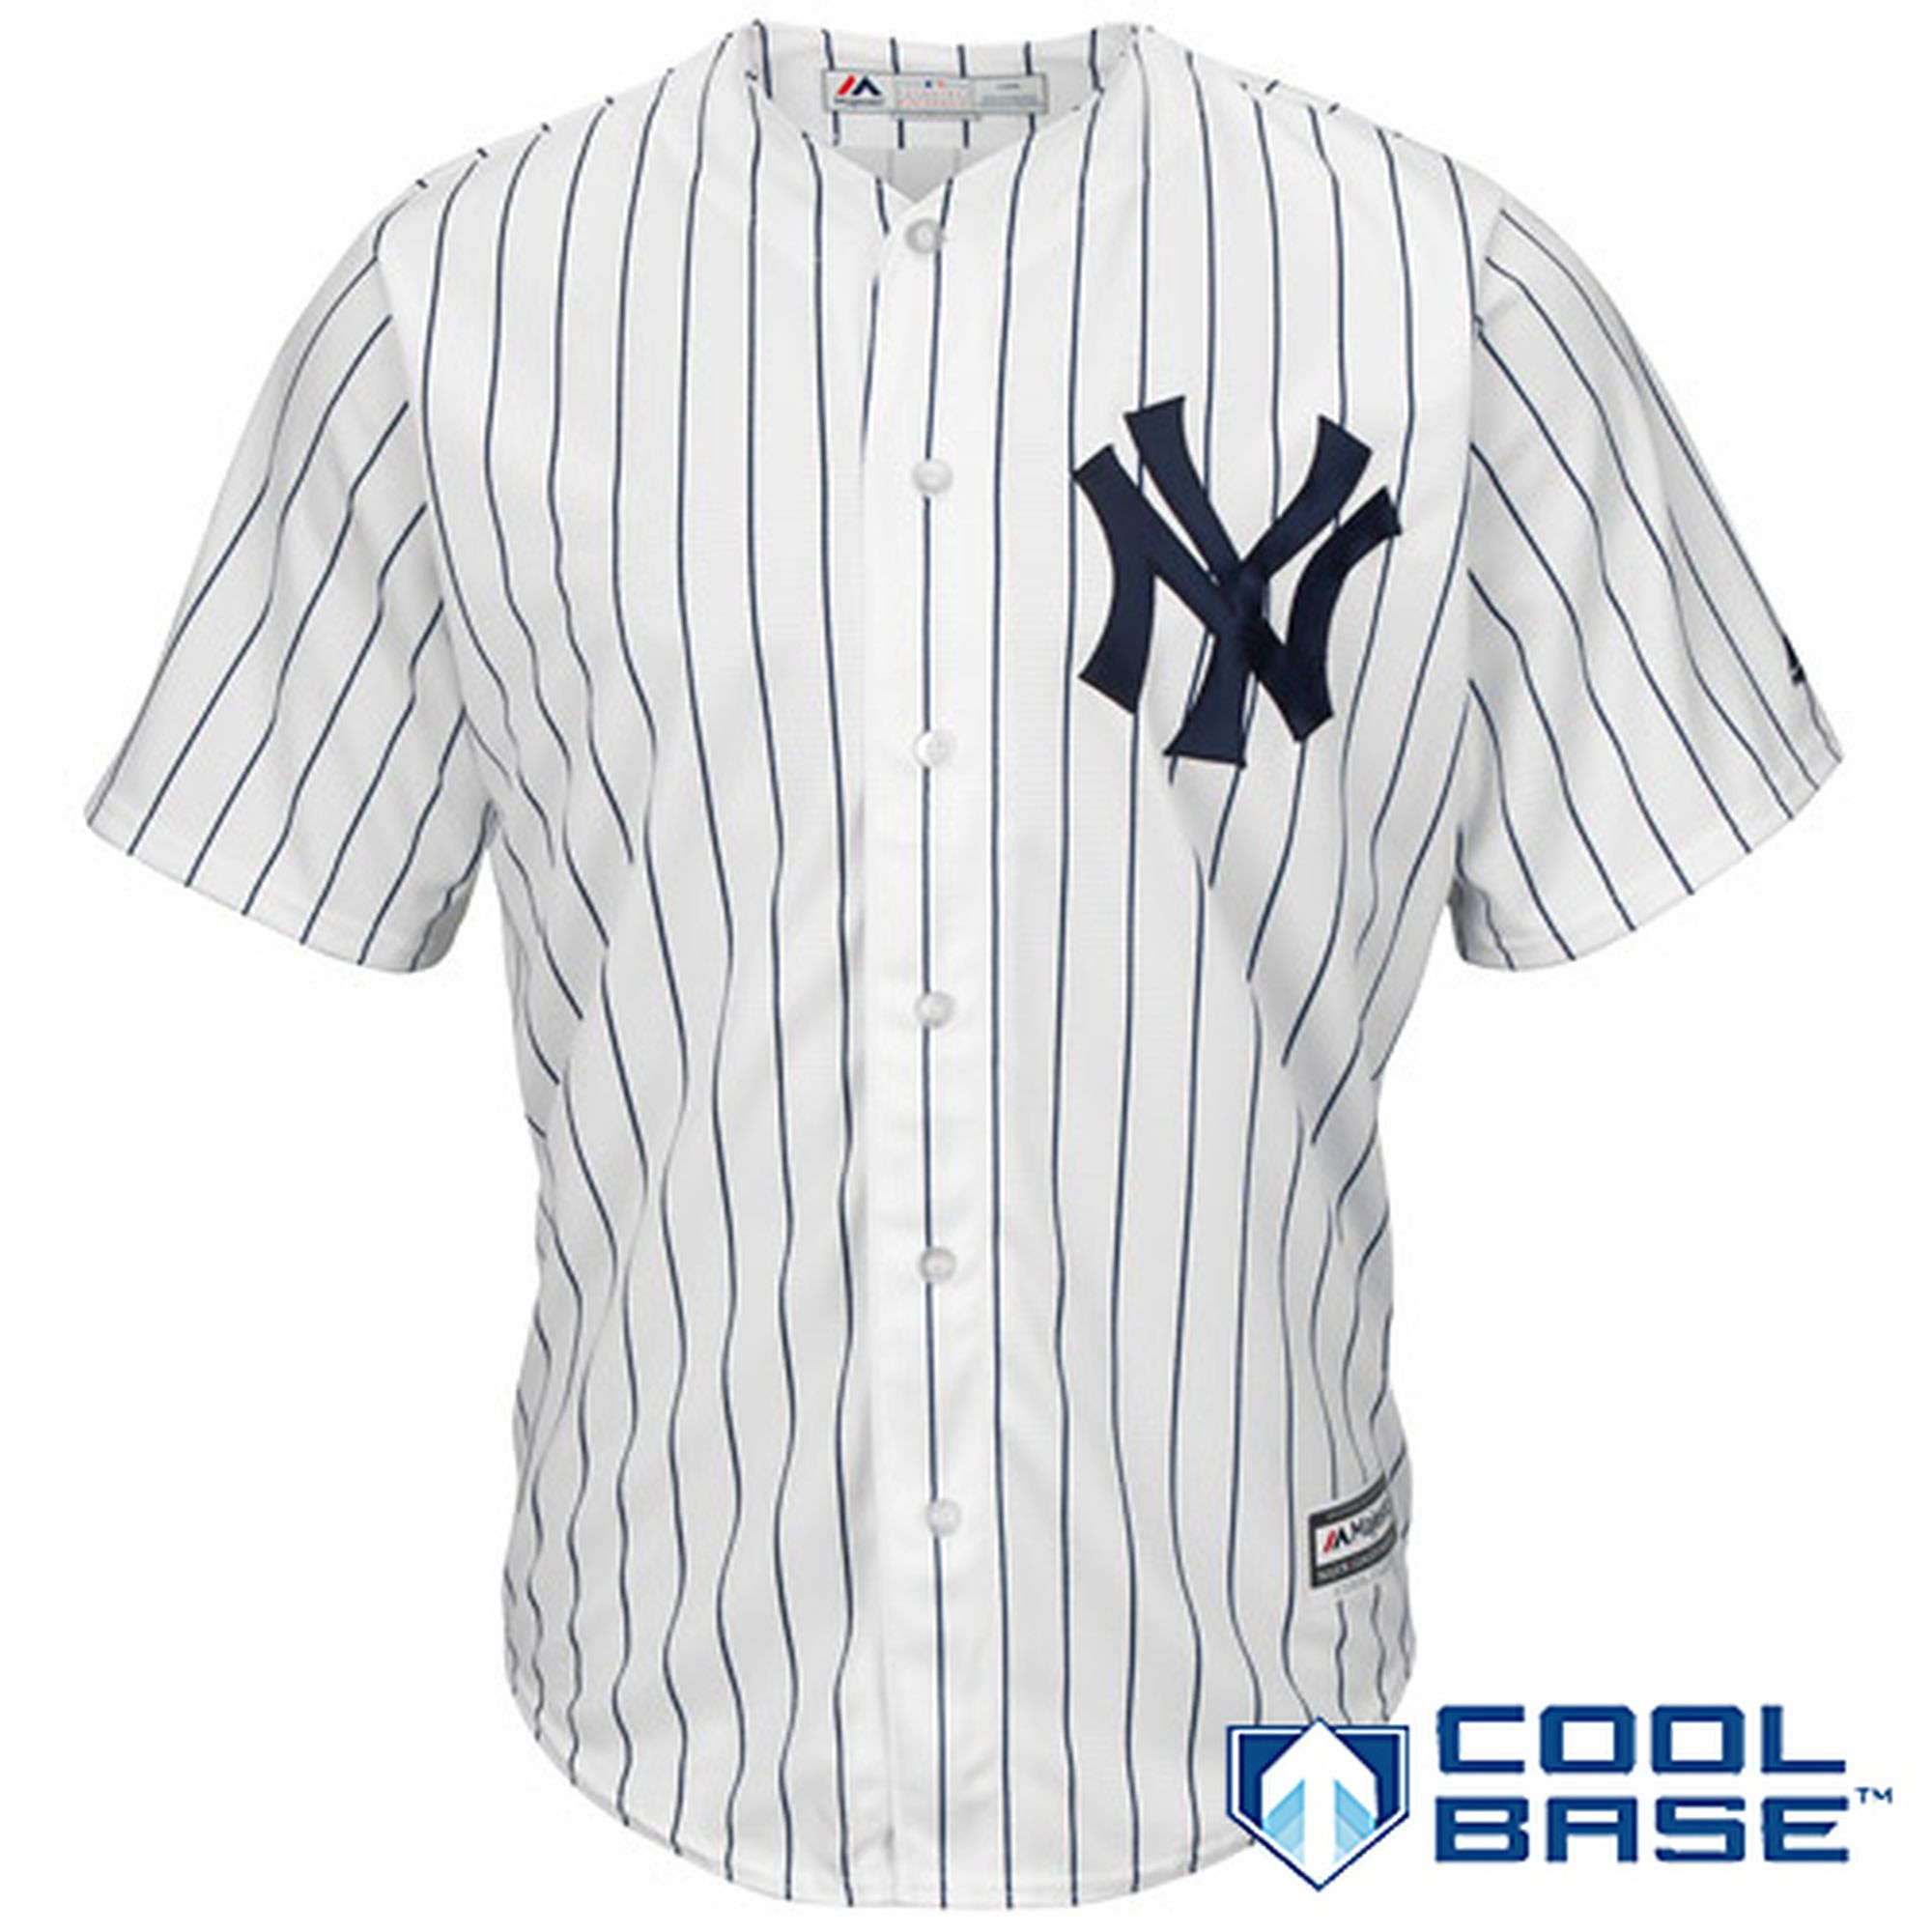 Majestic New York Yankees White Official Cool Base Jersey  521816712d9